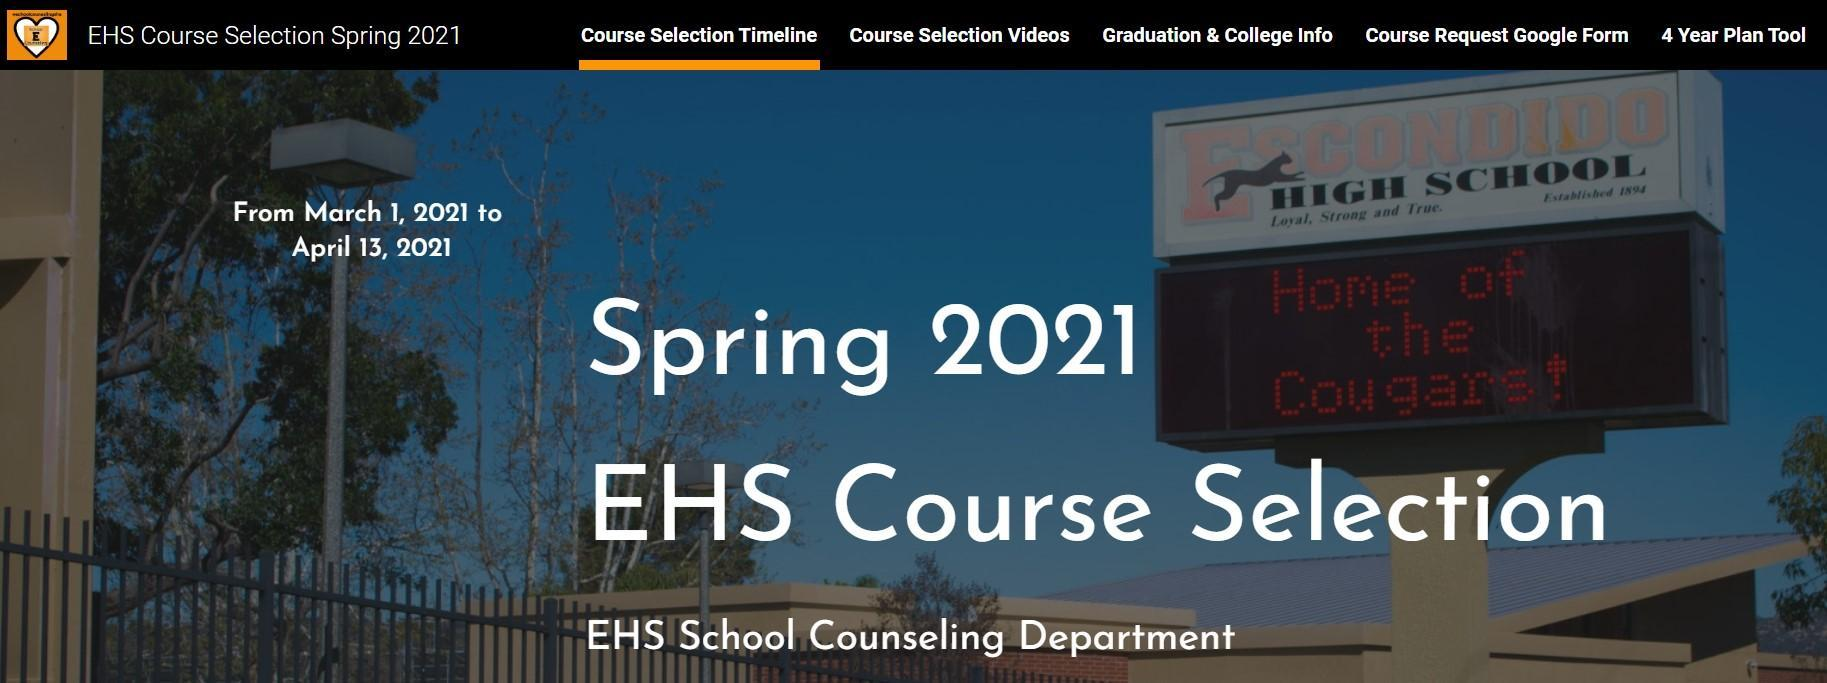 https://sites.google.com/euhsd.org/courseselection2021/course-selection-timeline